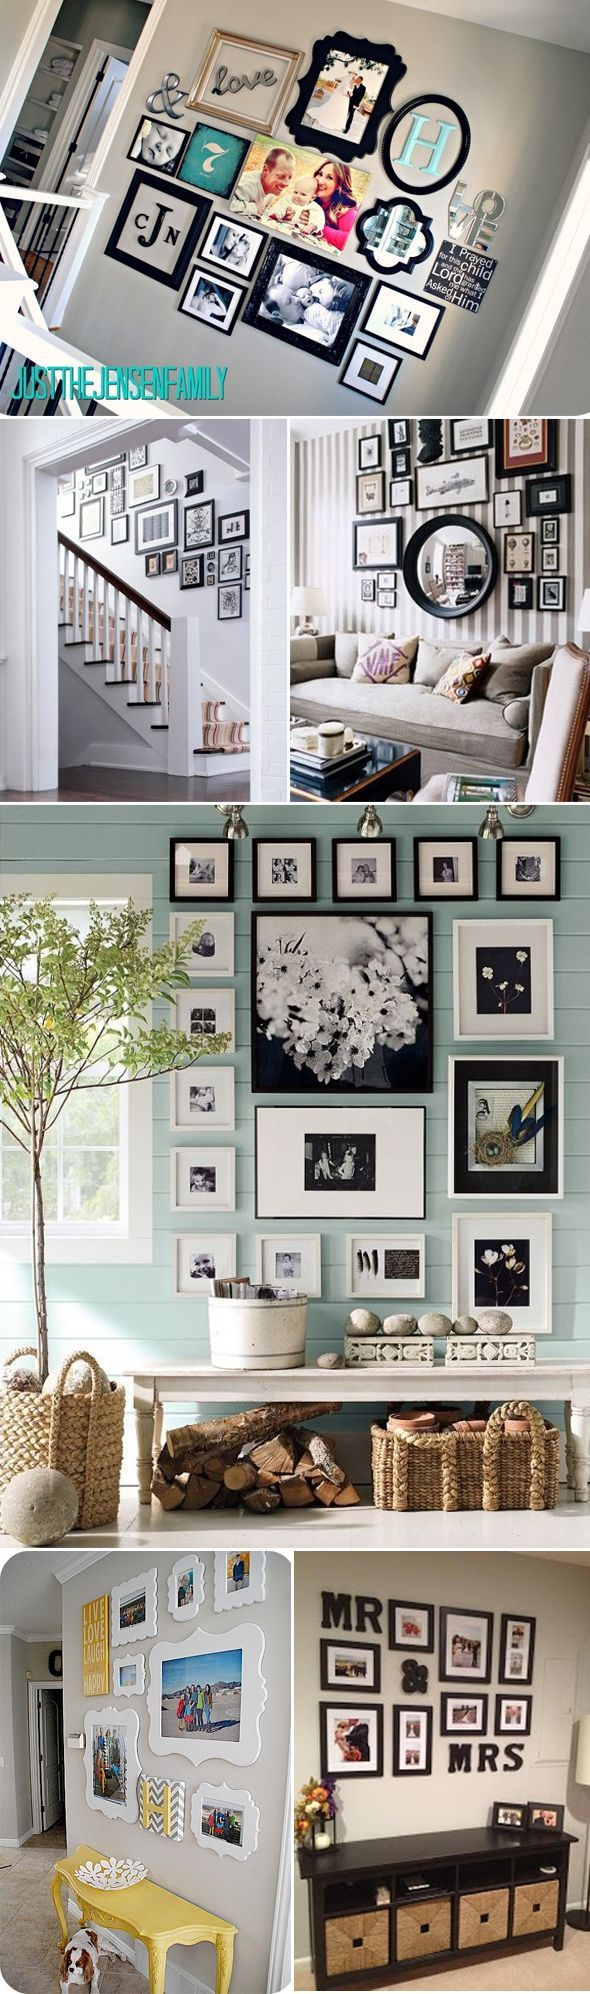 Gallery walls - elegant decor